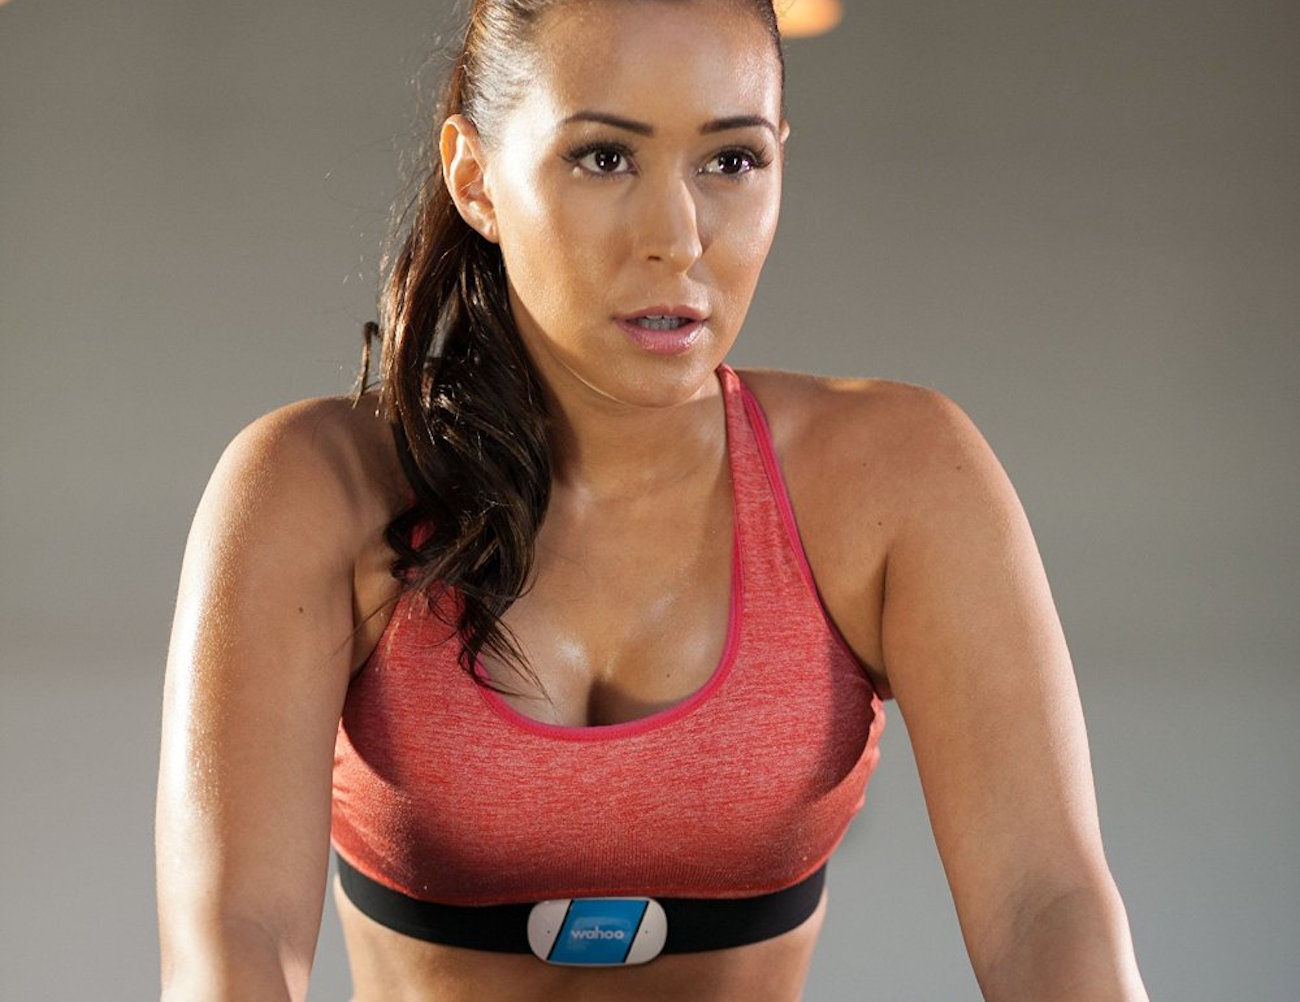 Wahoo+TICKR+X+Workout+Tracker+With+Built+In+Memory